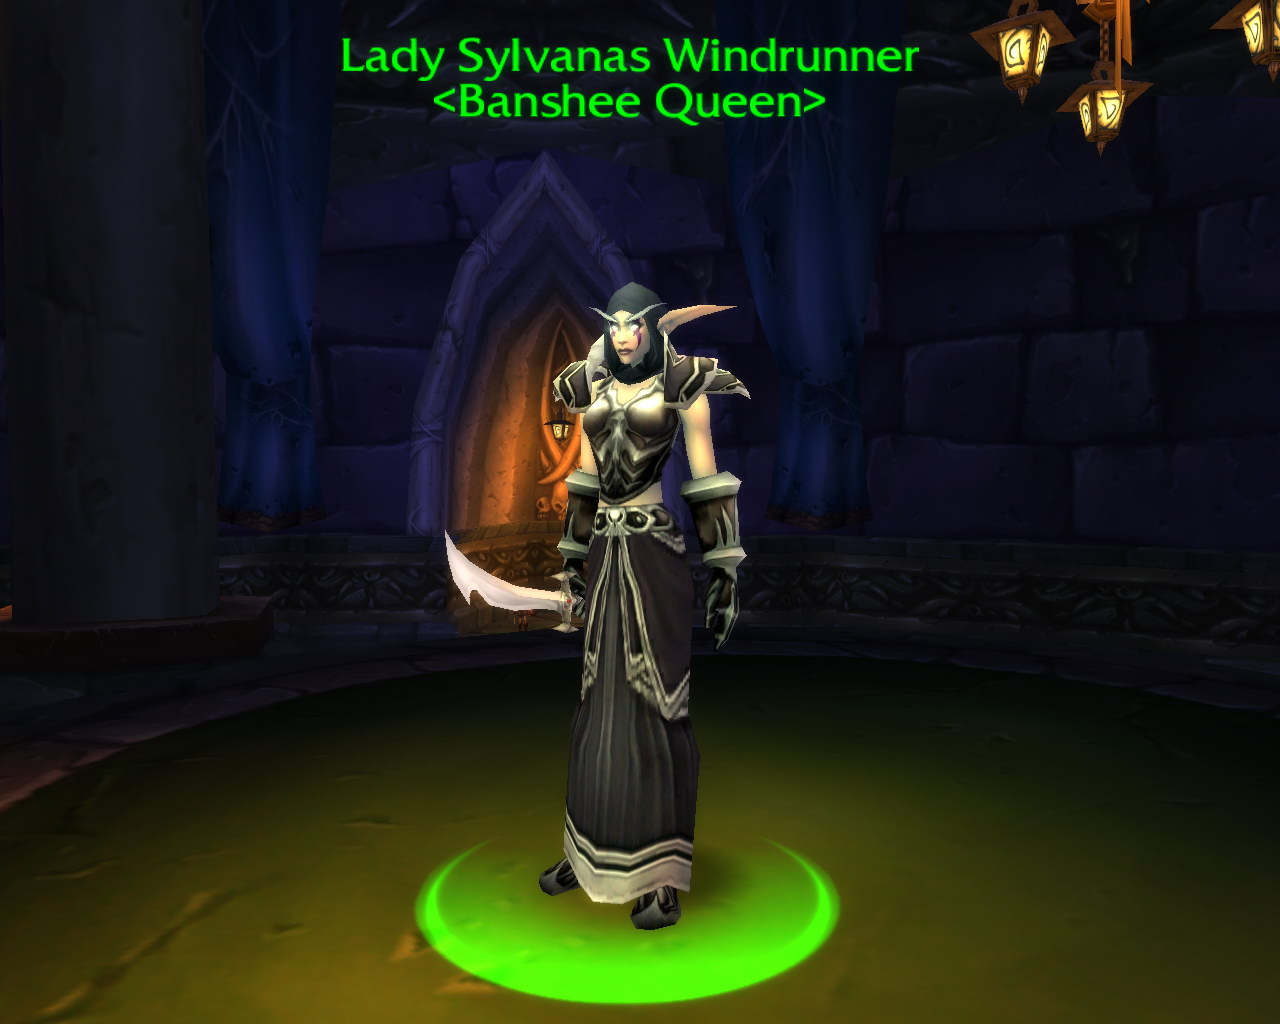 Lady sylvanas windrunner respawn time adult images